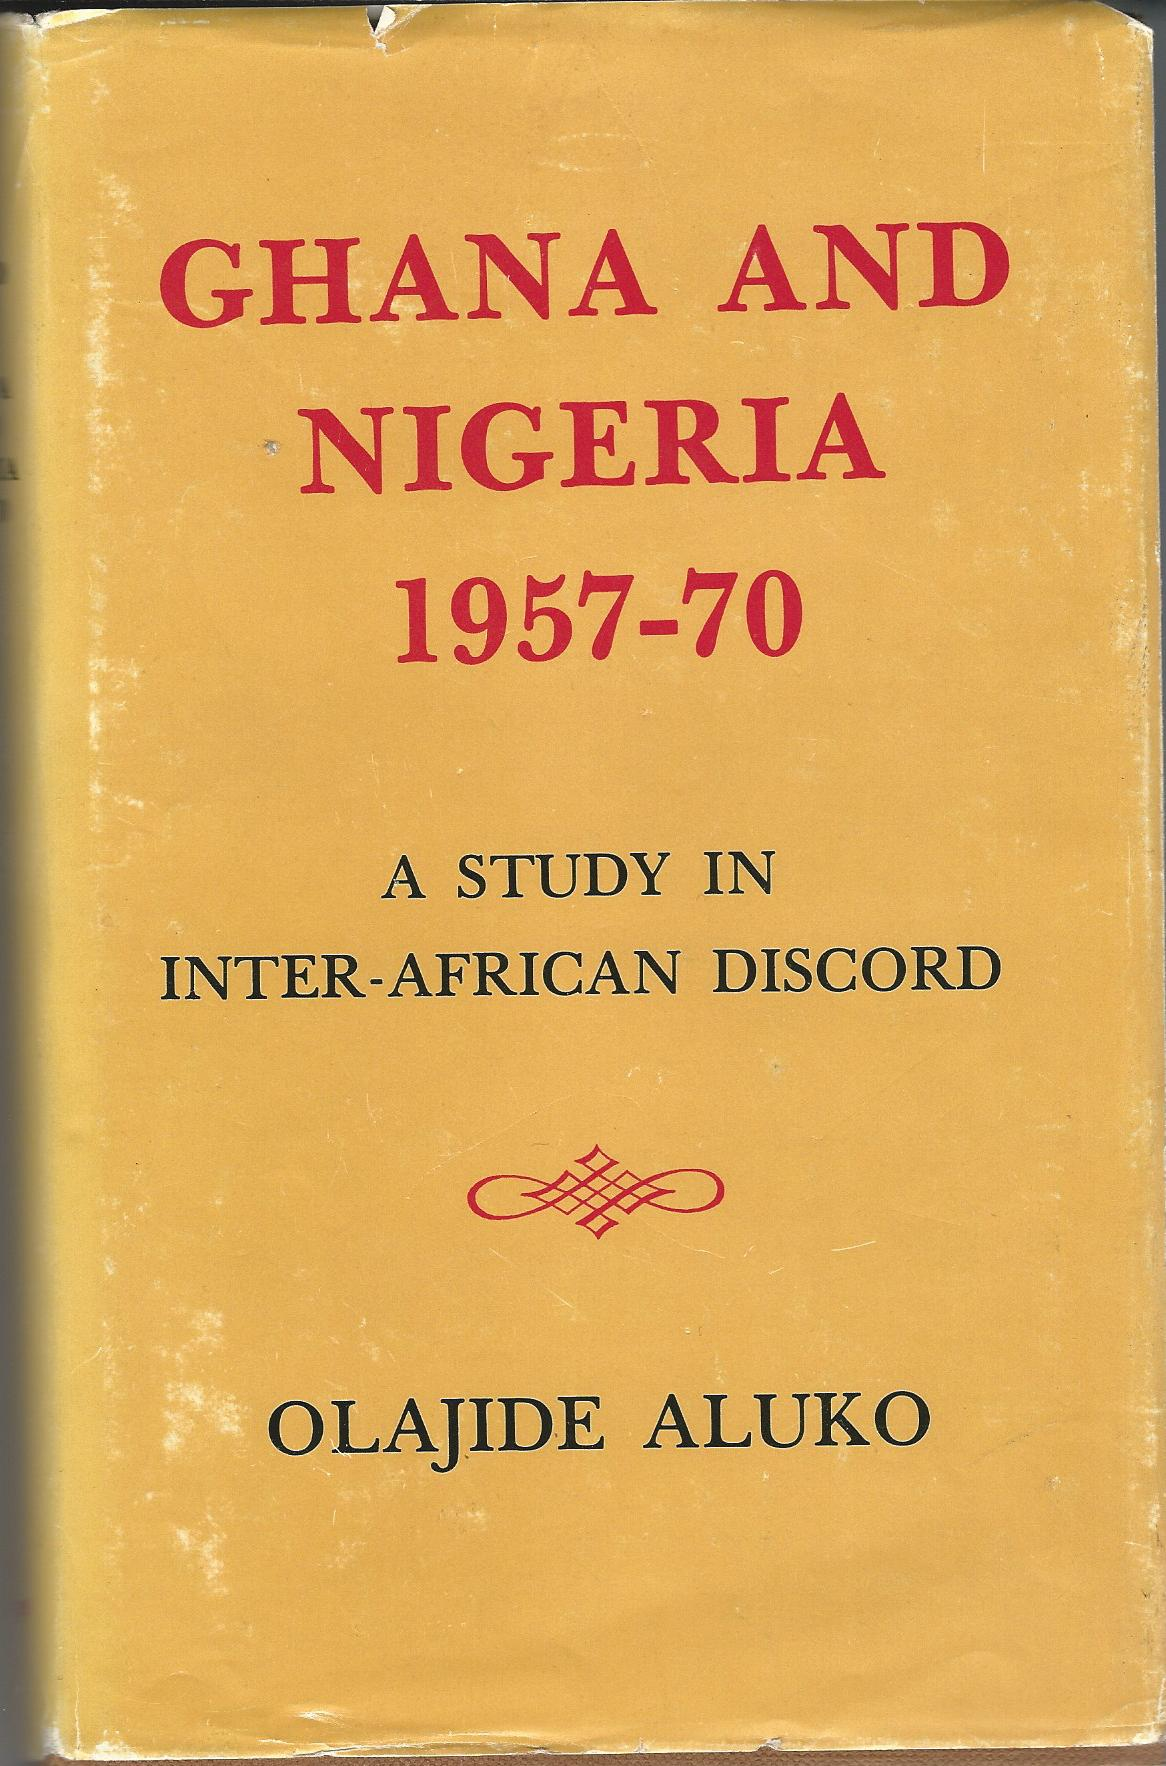 Image for Ghana and Nigeria, 1957-70: A Study of Inter-African Discord.